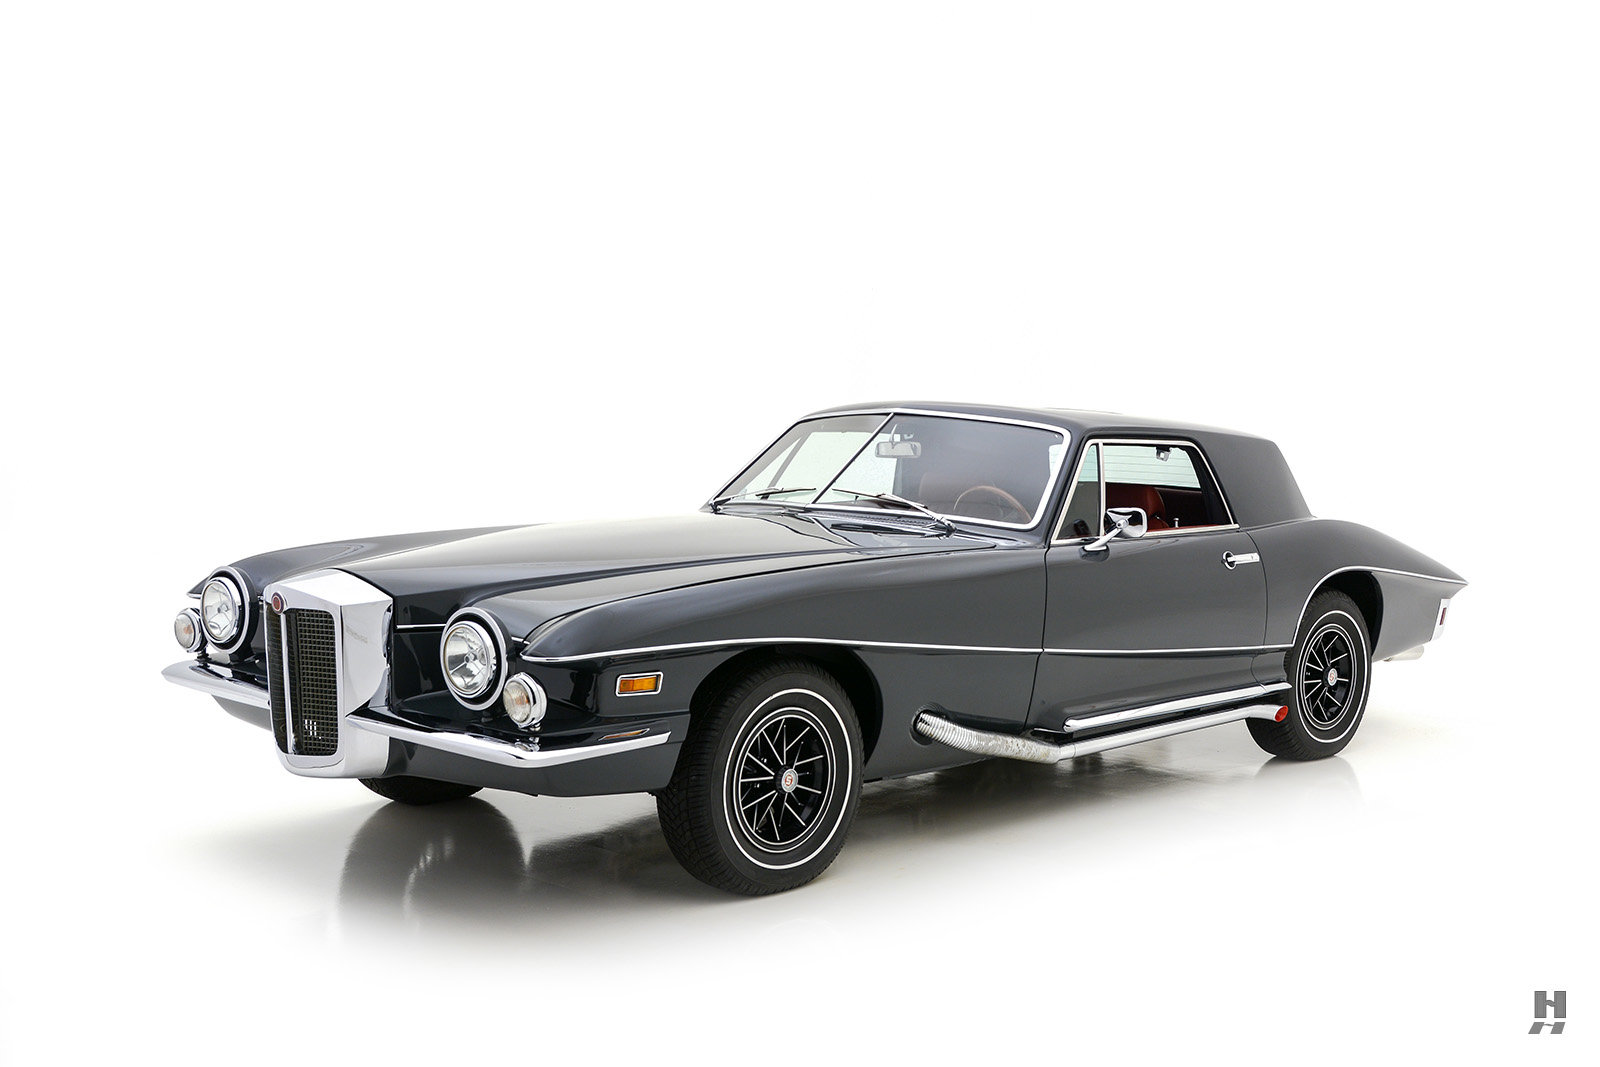 1971 STUTZ BLACKHAWK SERIES 1 COUPE For Sale (picture 1 of 6)